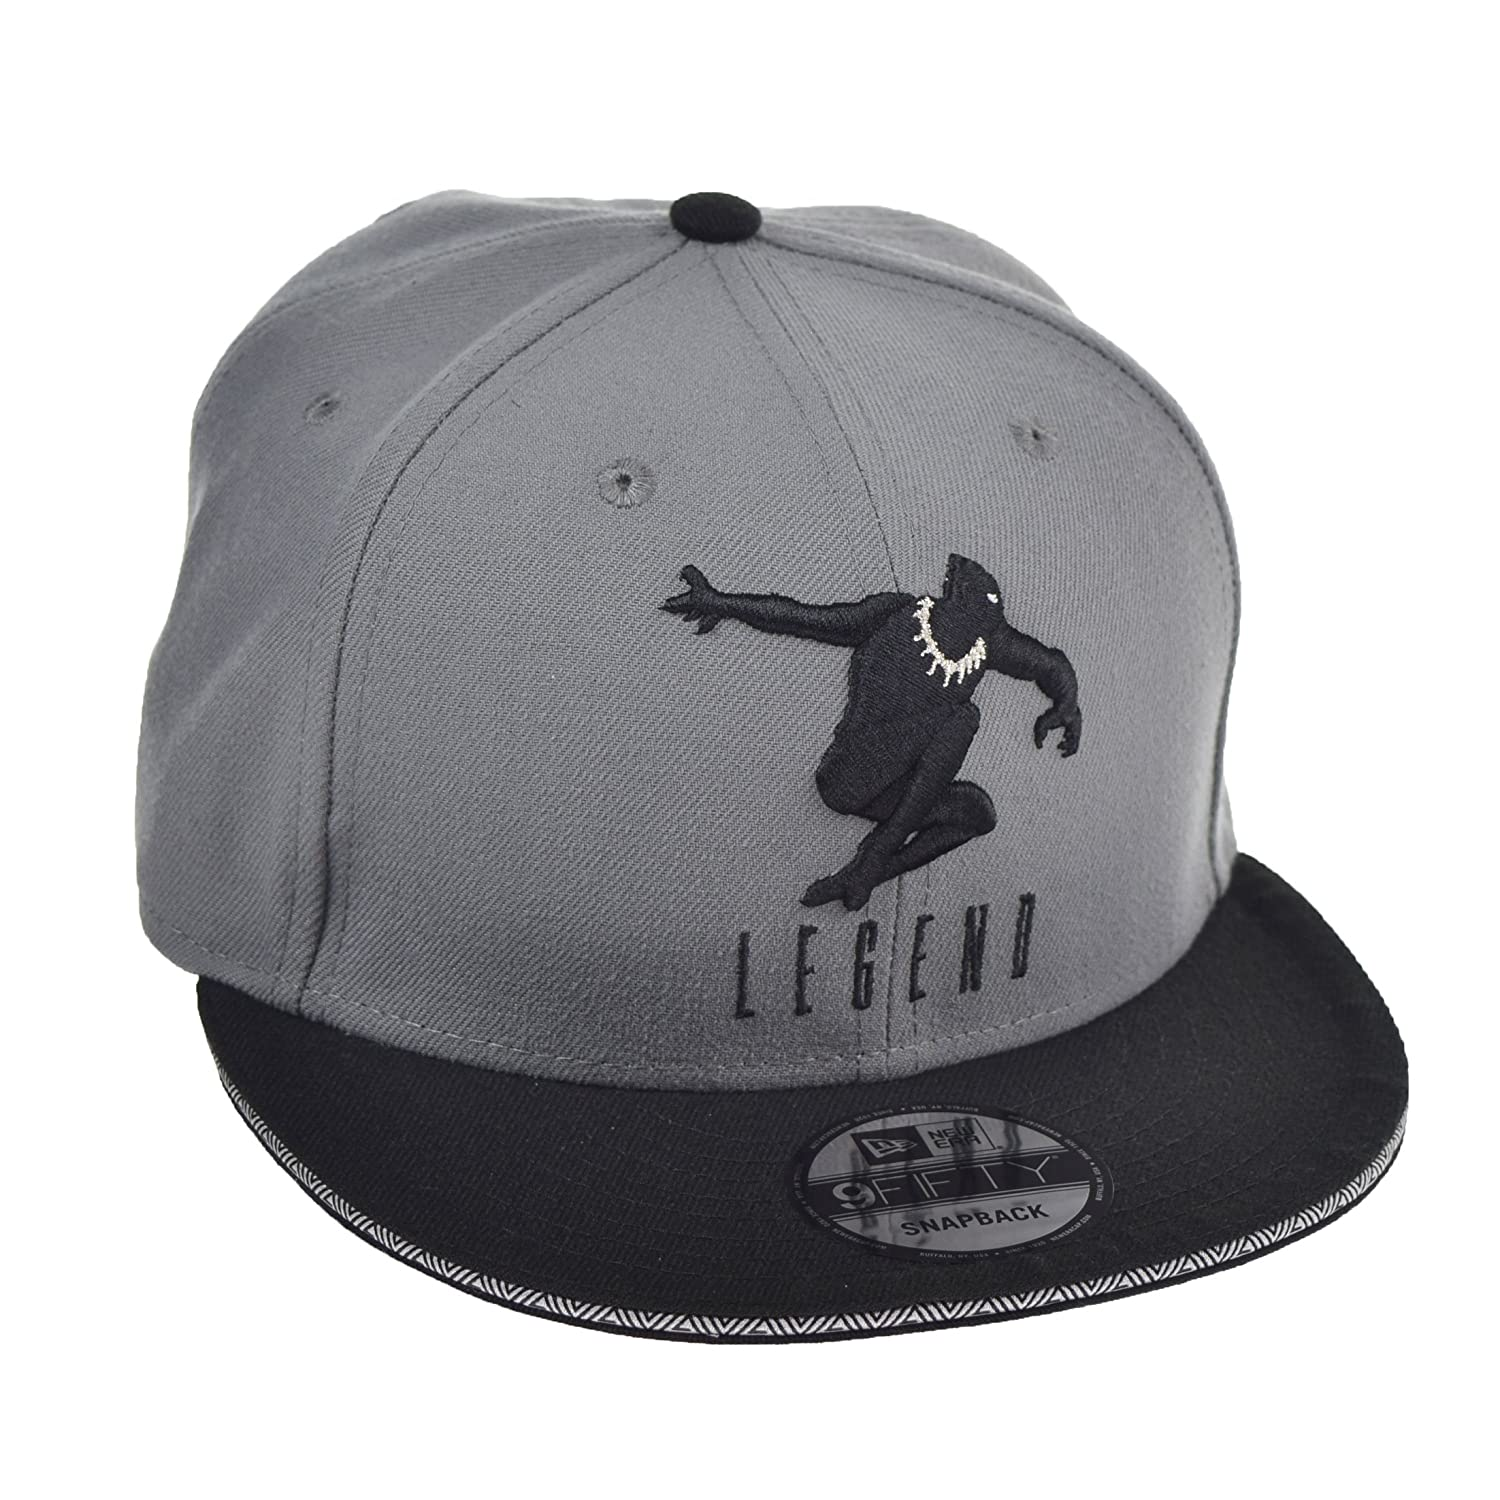 ... shopping new era black panther legend 9fifty mens snapback hat cap grey  black 11585954 size os 9348f3c7e782